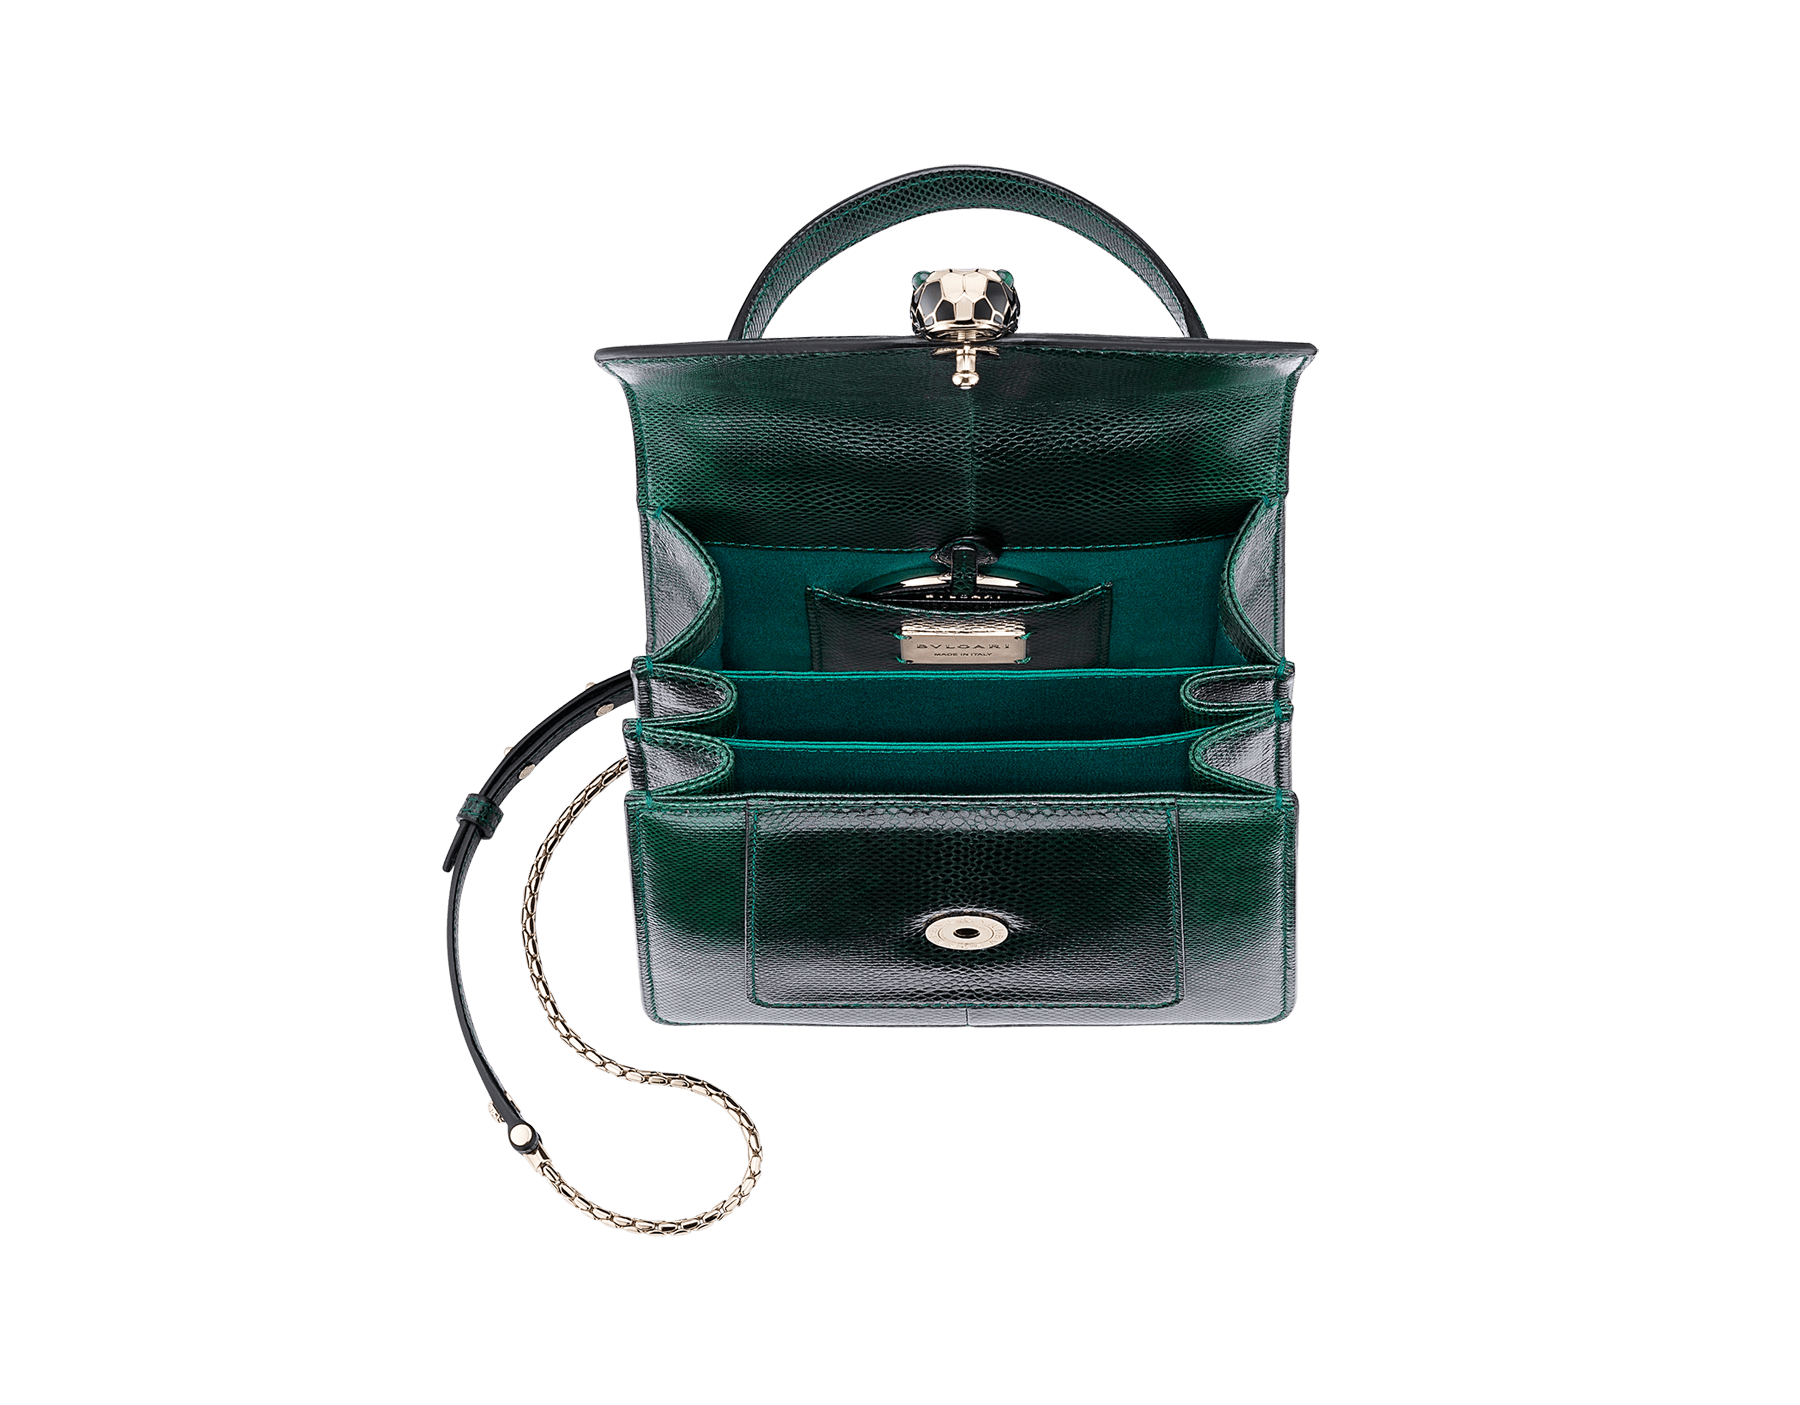 Flap cover bag Serpenti Forever in forest emerald shiny karung skin. Brass light gold plated hardware and snake head closure in black and white enamel with eyes in green malachite. 283517 image 5